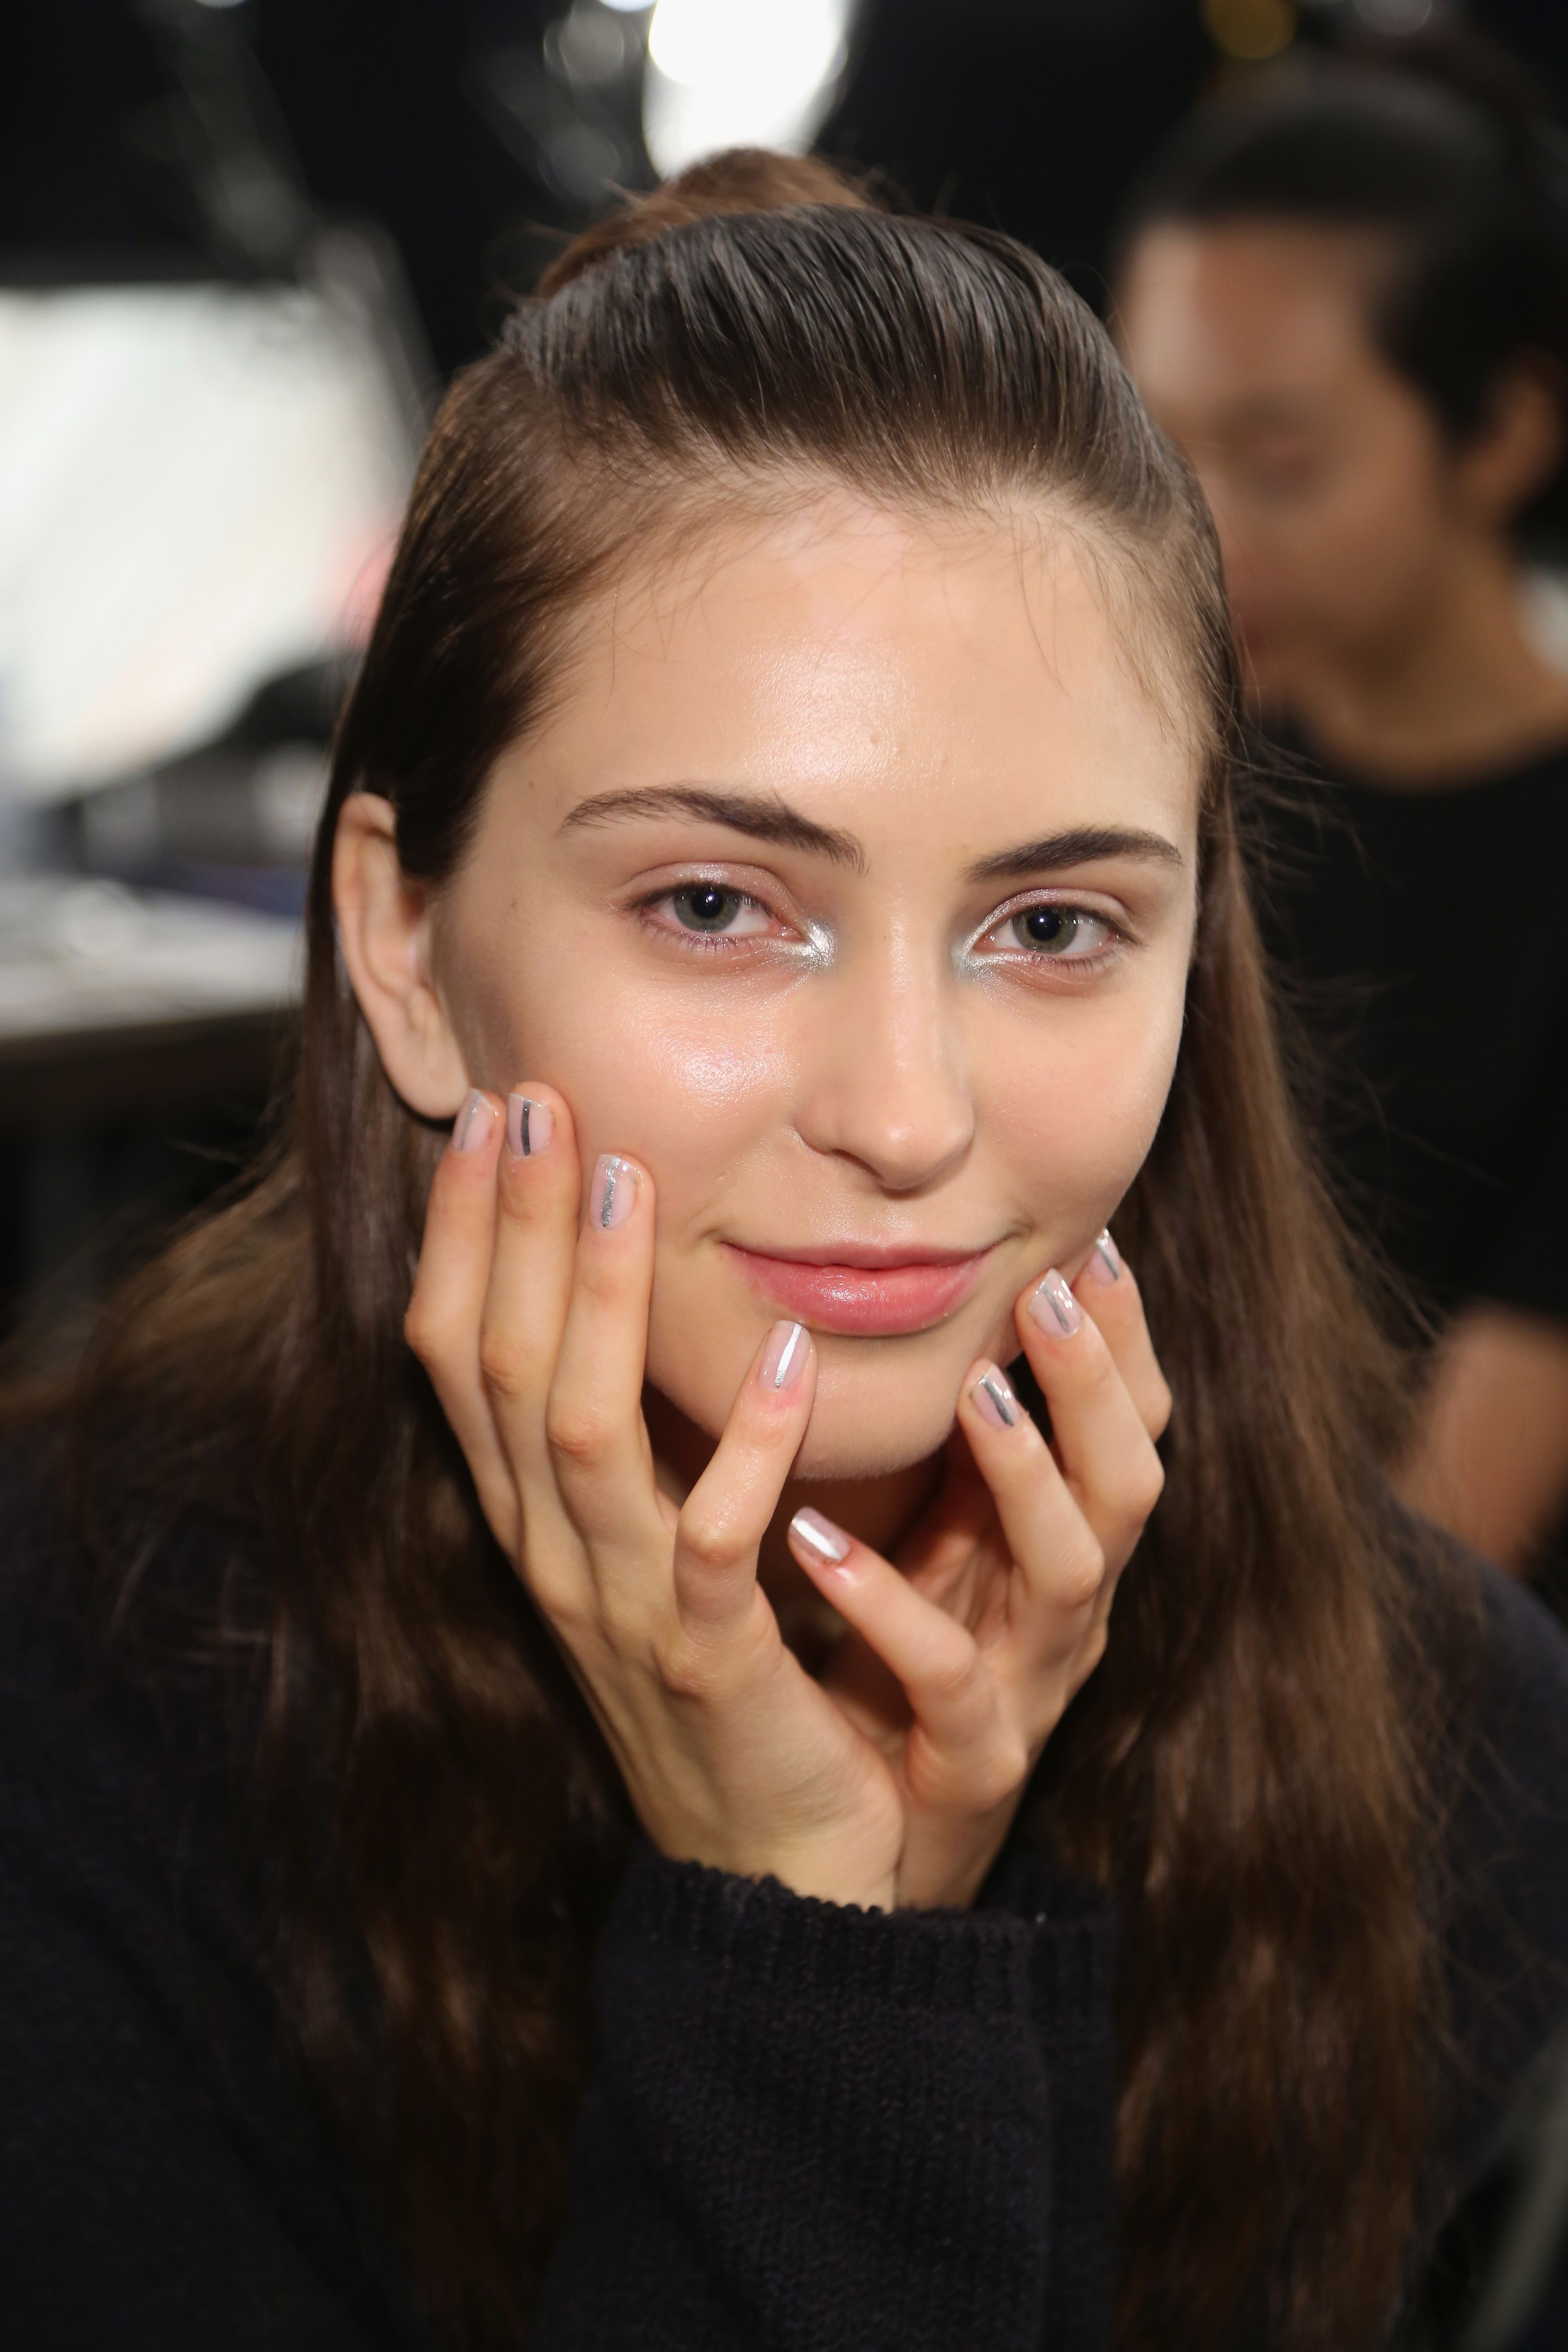 24 Eyeliner Styles For The Adventurous Makeup Experimenters